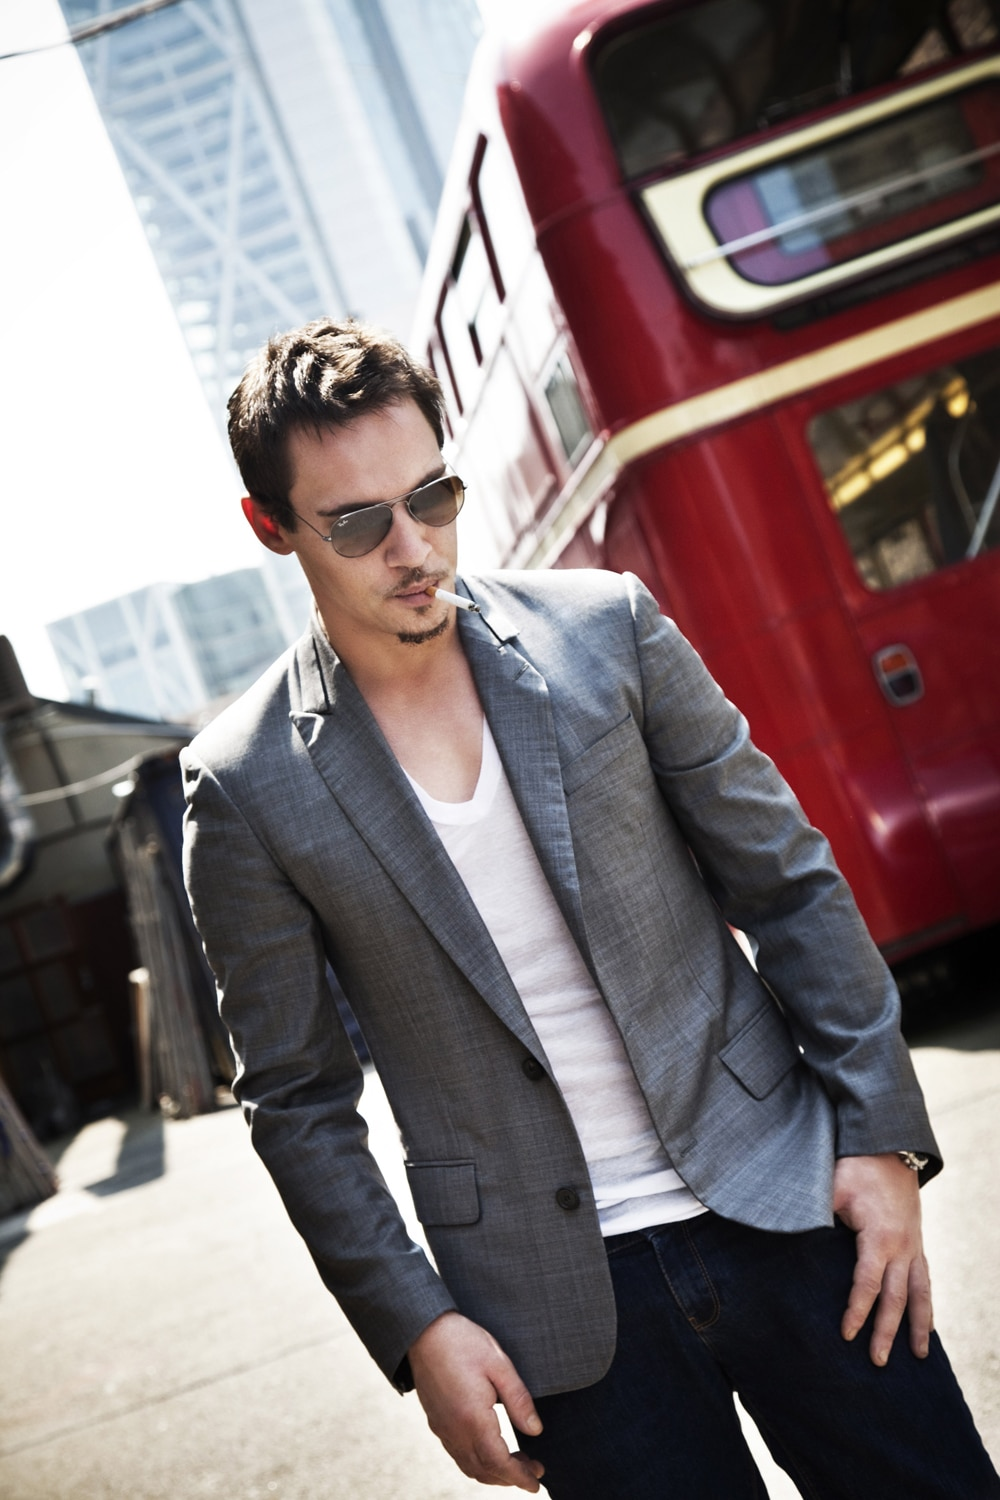 JONATHAN RHYS MEYERS AT SHOREDITCH STUDIOS PHOTOGRAPHED BY BARRY MCCALL FOR PHO20GRAPHY